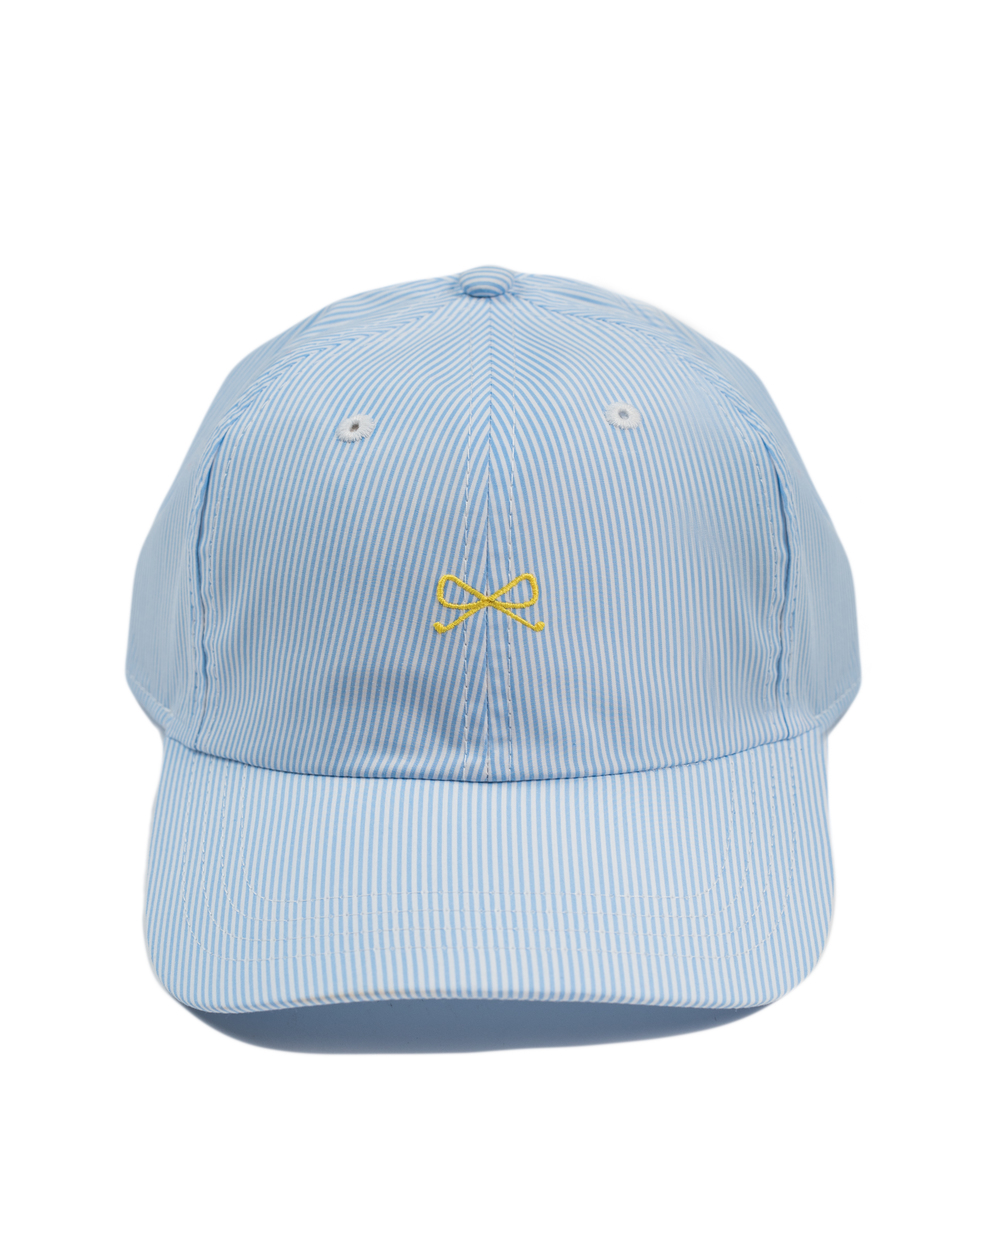 SE Hat in Blue/White with yellow logo